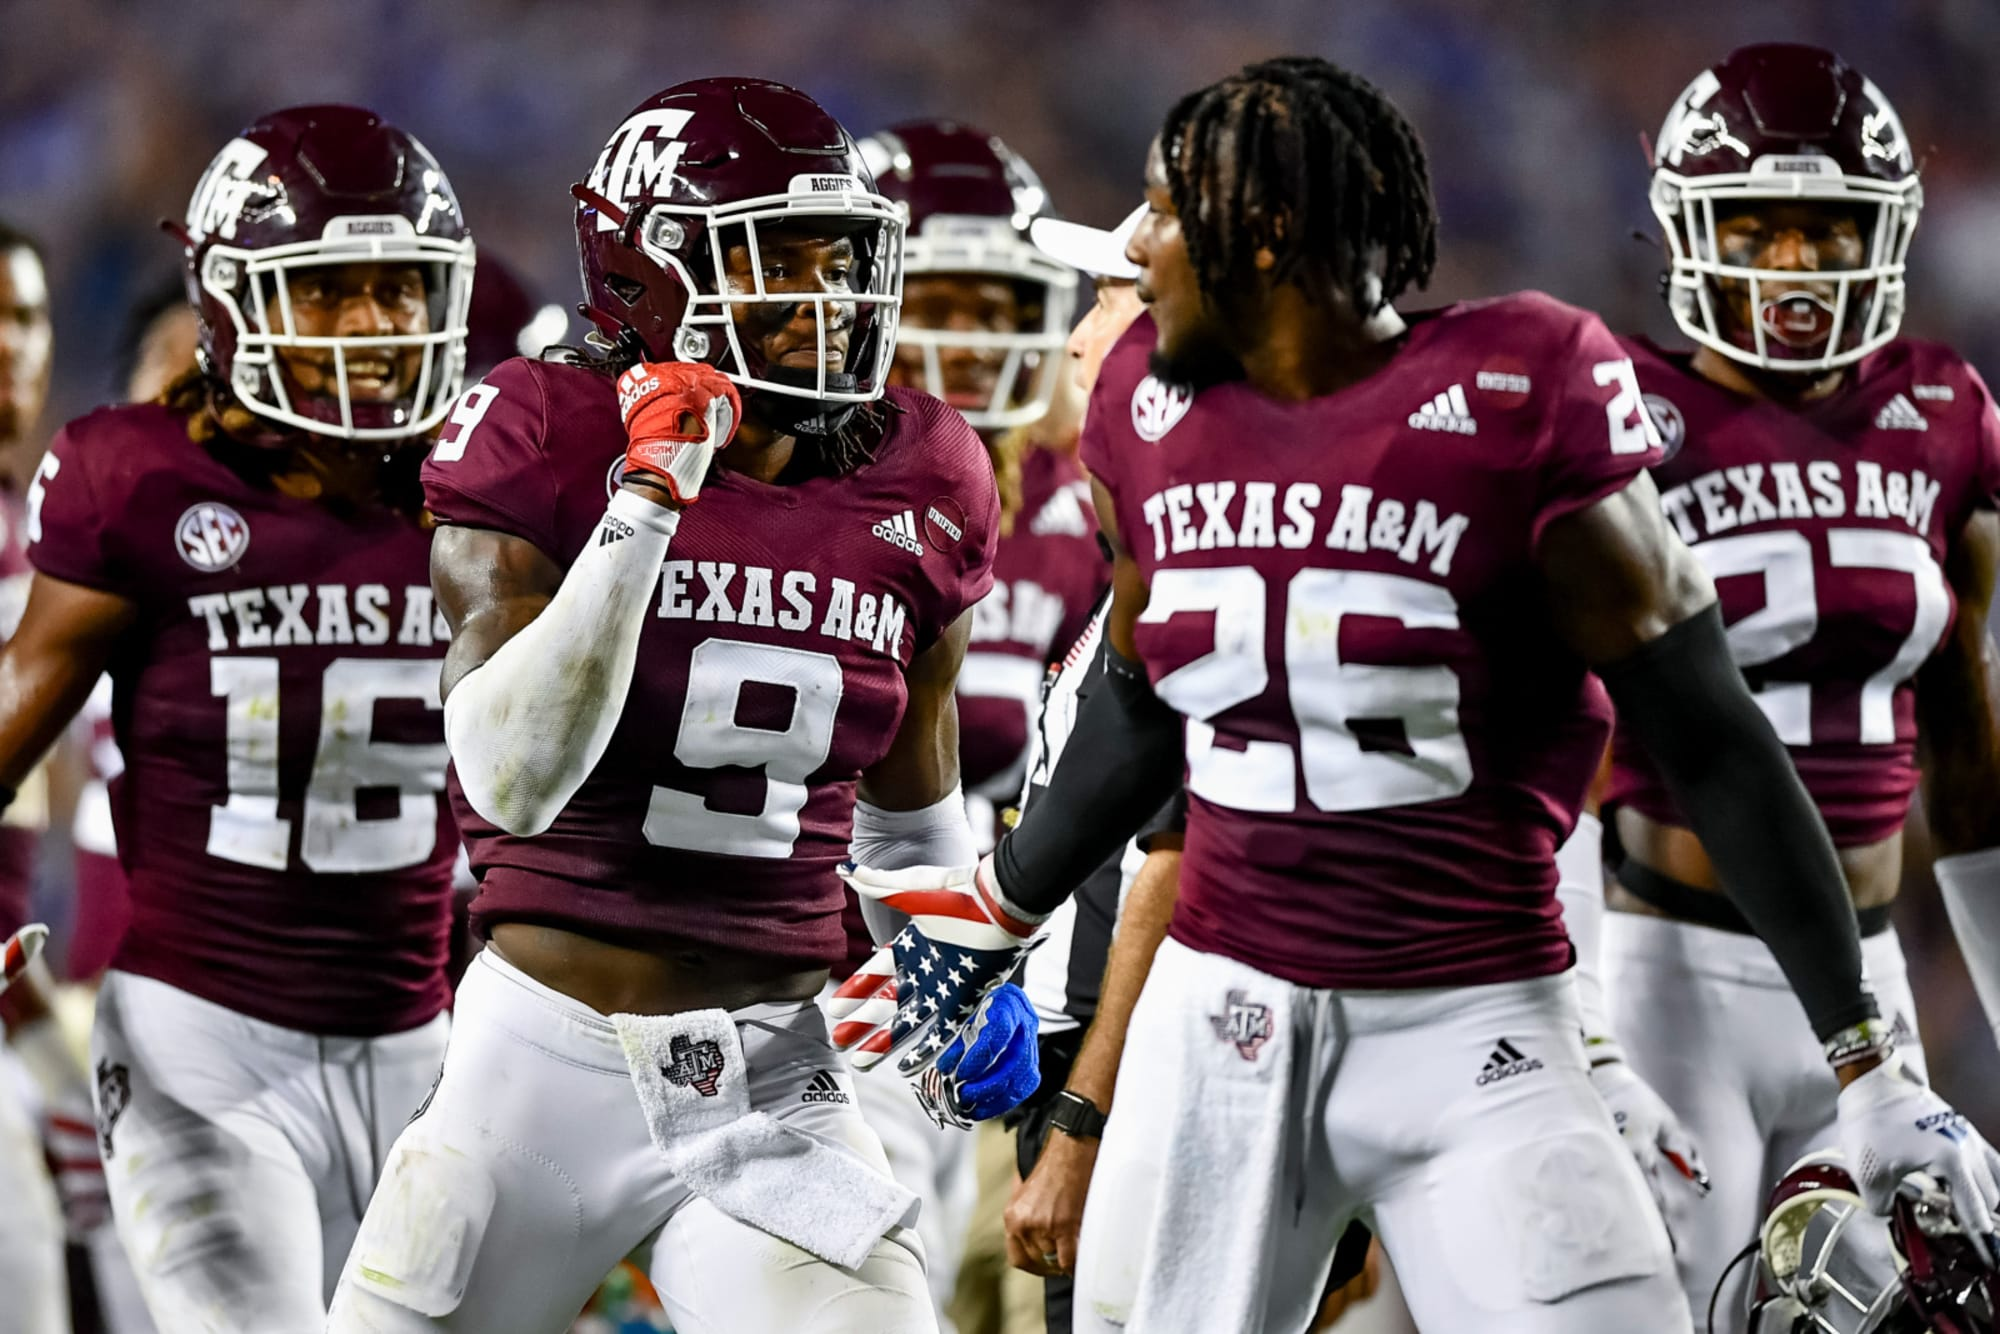 Texas A&M Football: Why Aggies should be most feared team in the SEC